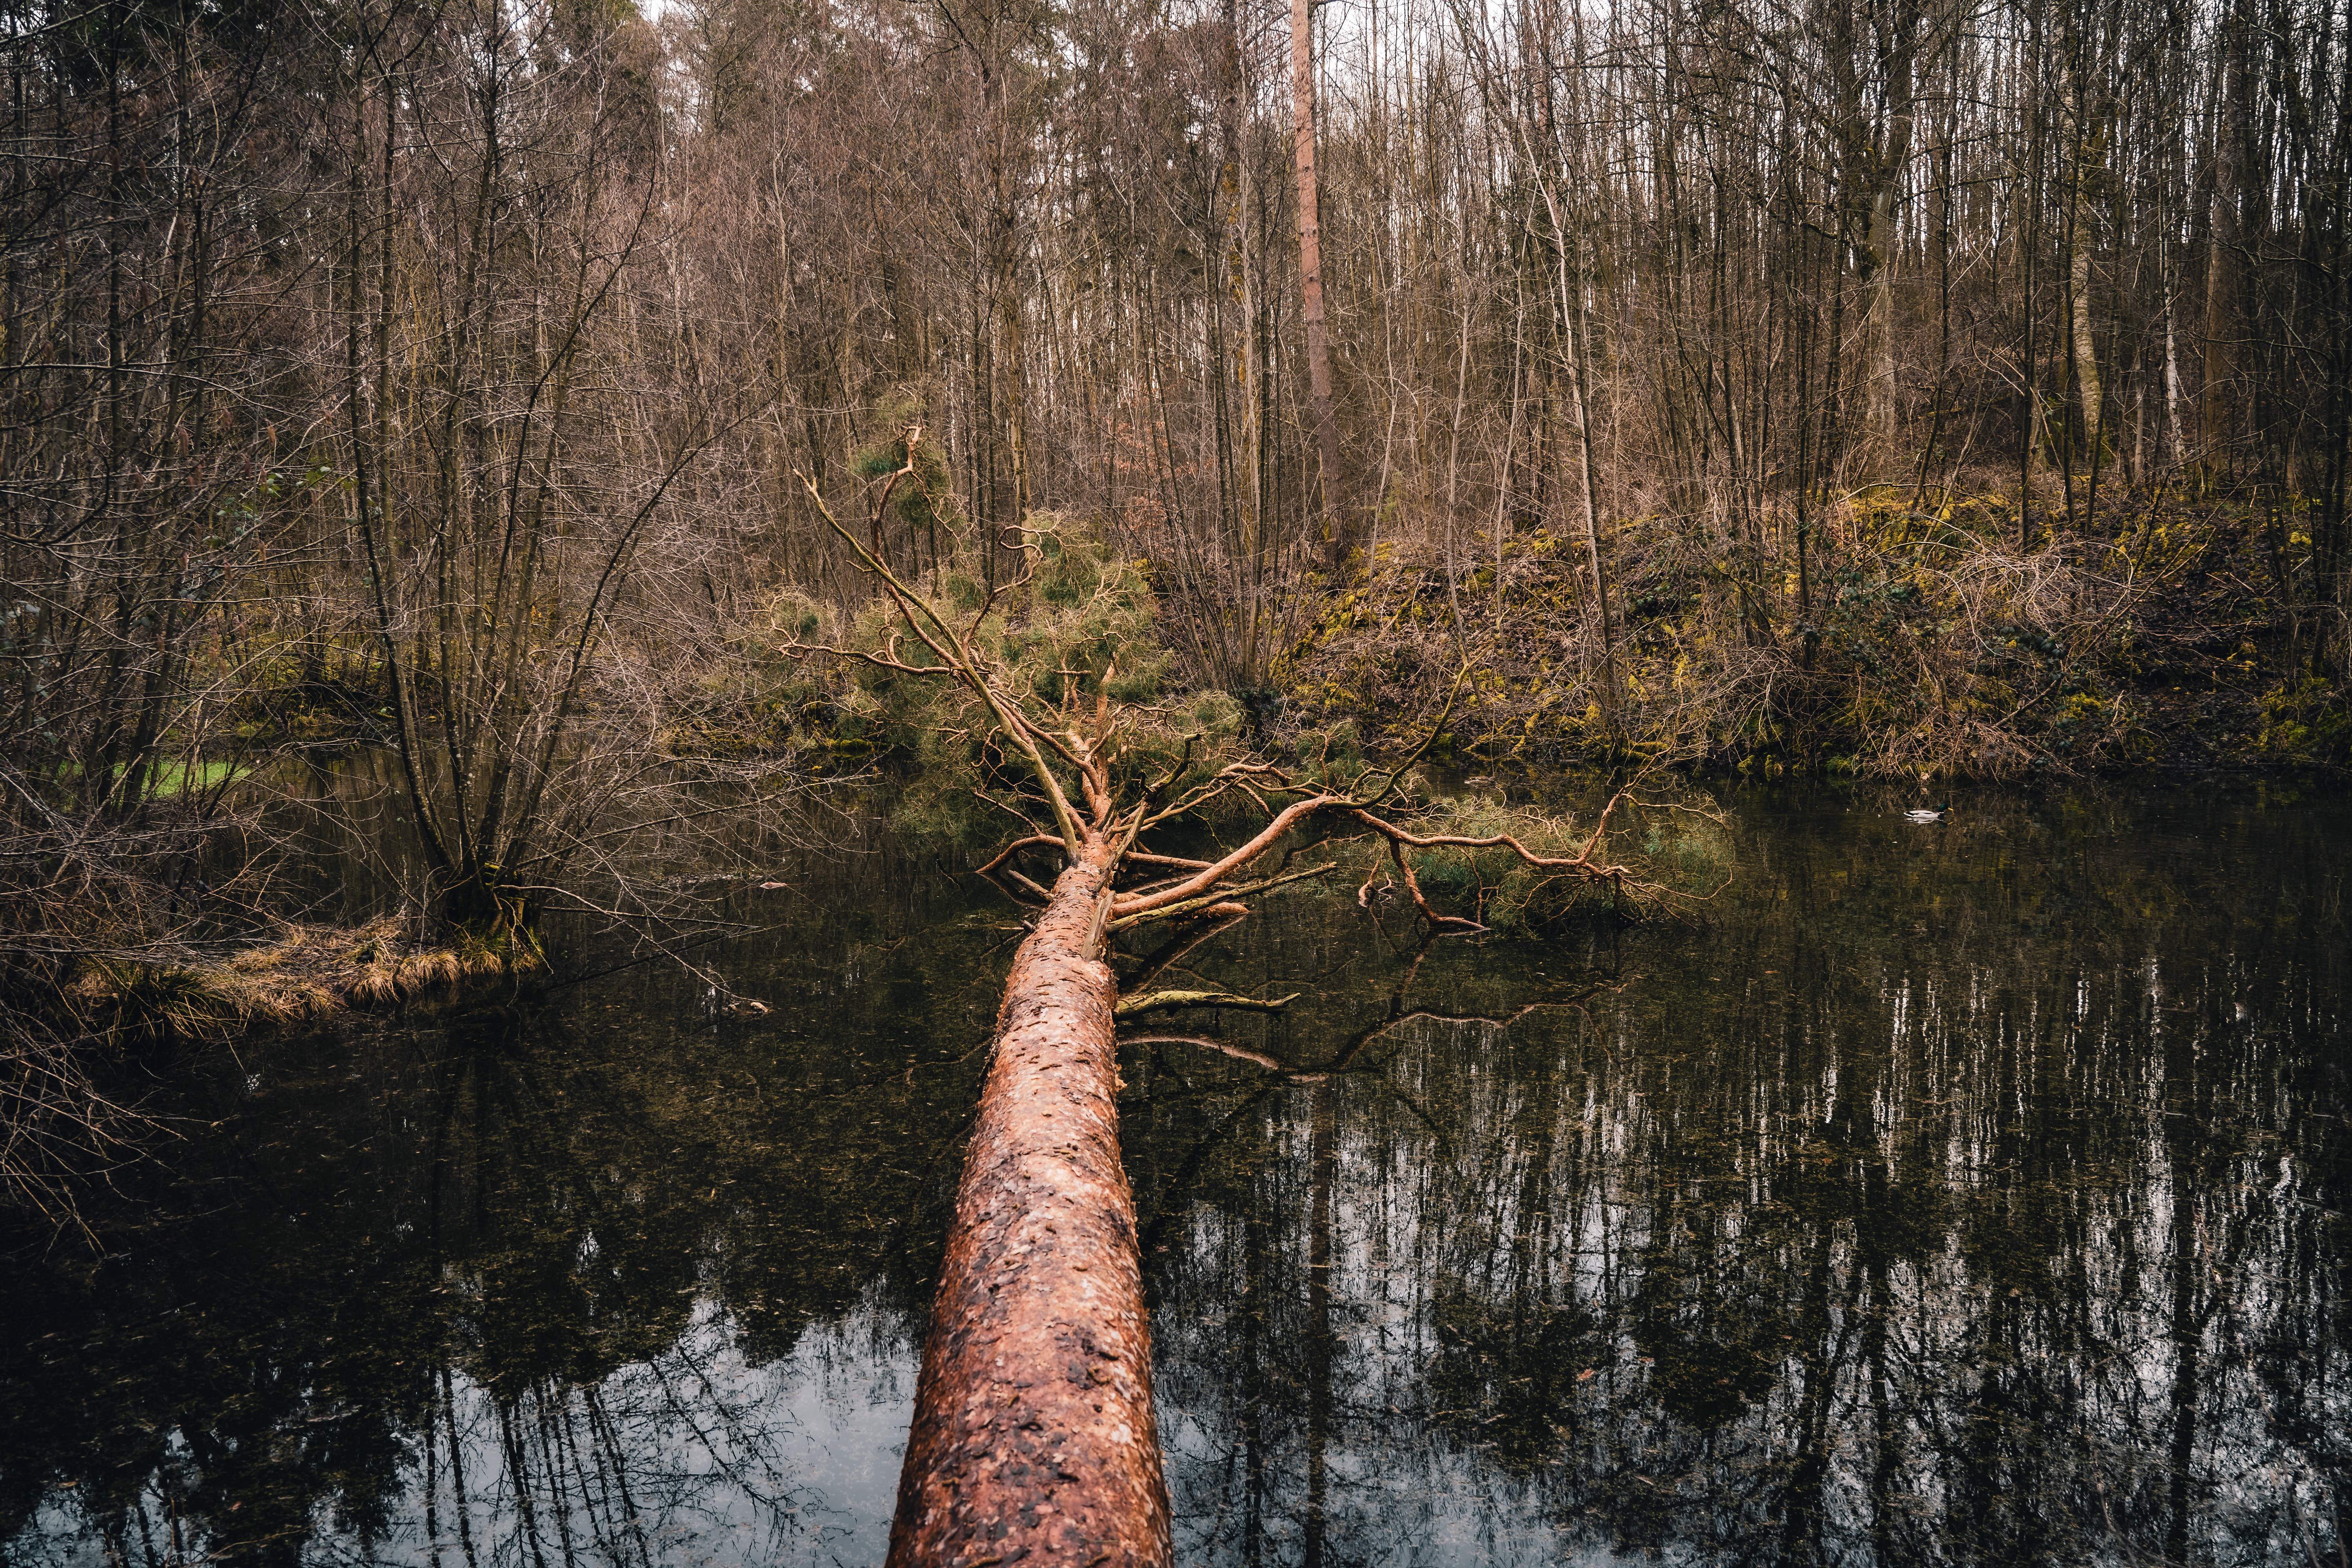 Forest Nature Reflection Tree Water 6000x4000